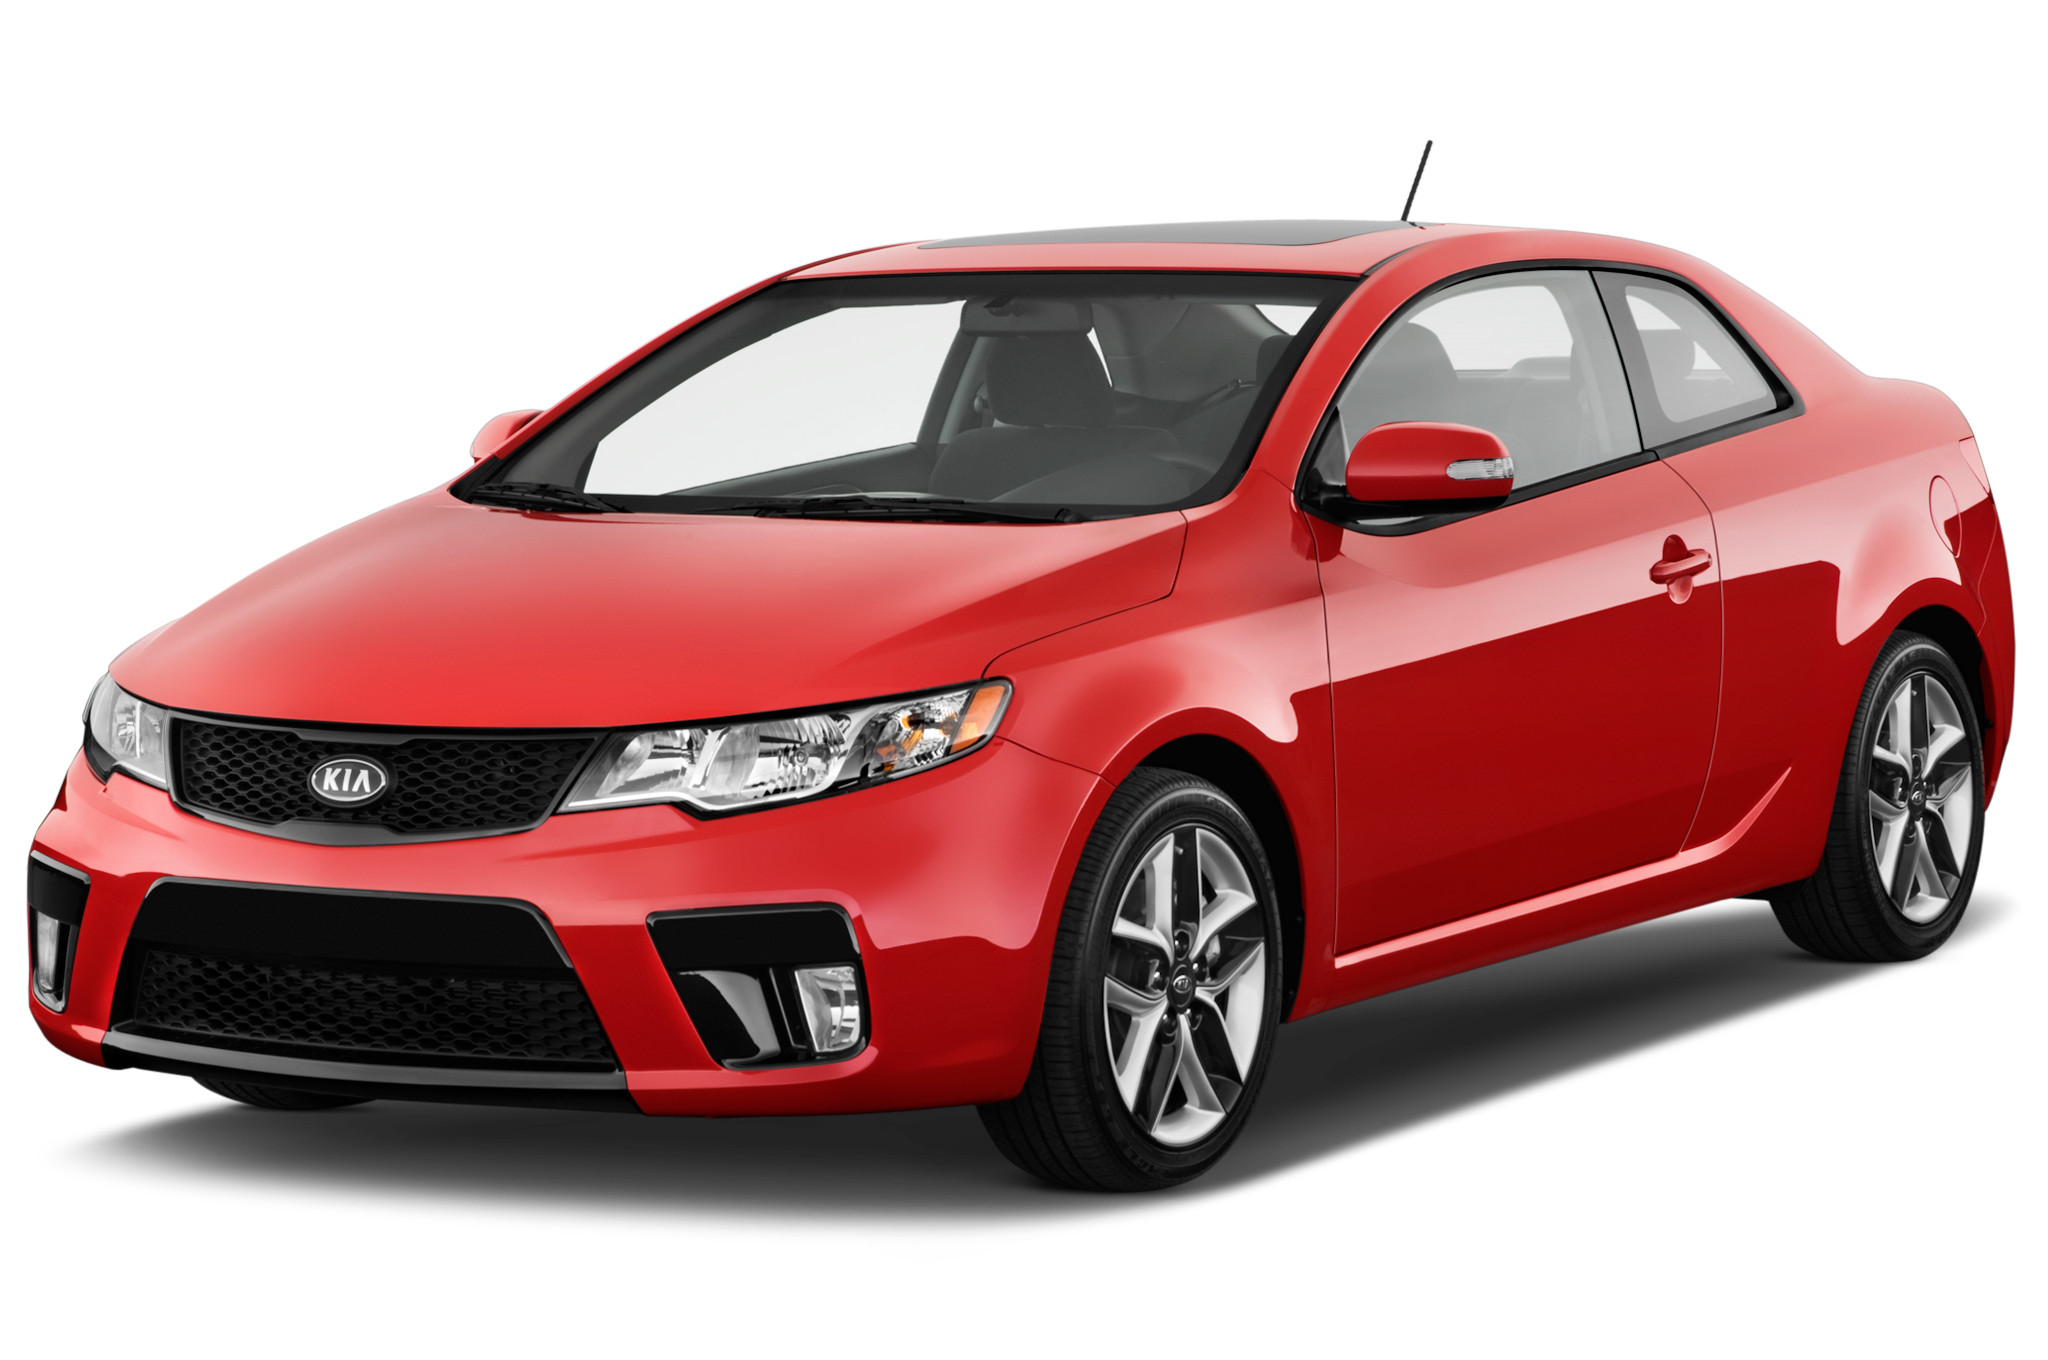 express auto img trade usa sell for koup sale product kia snellville forte sales buy